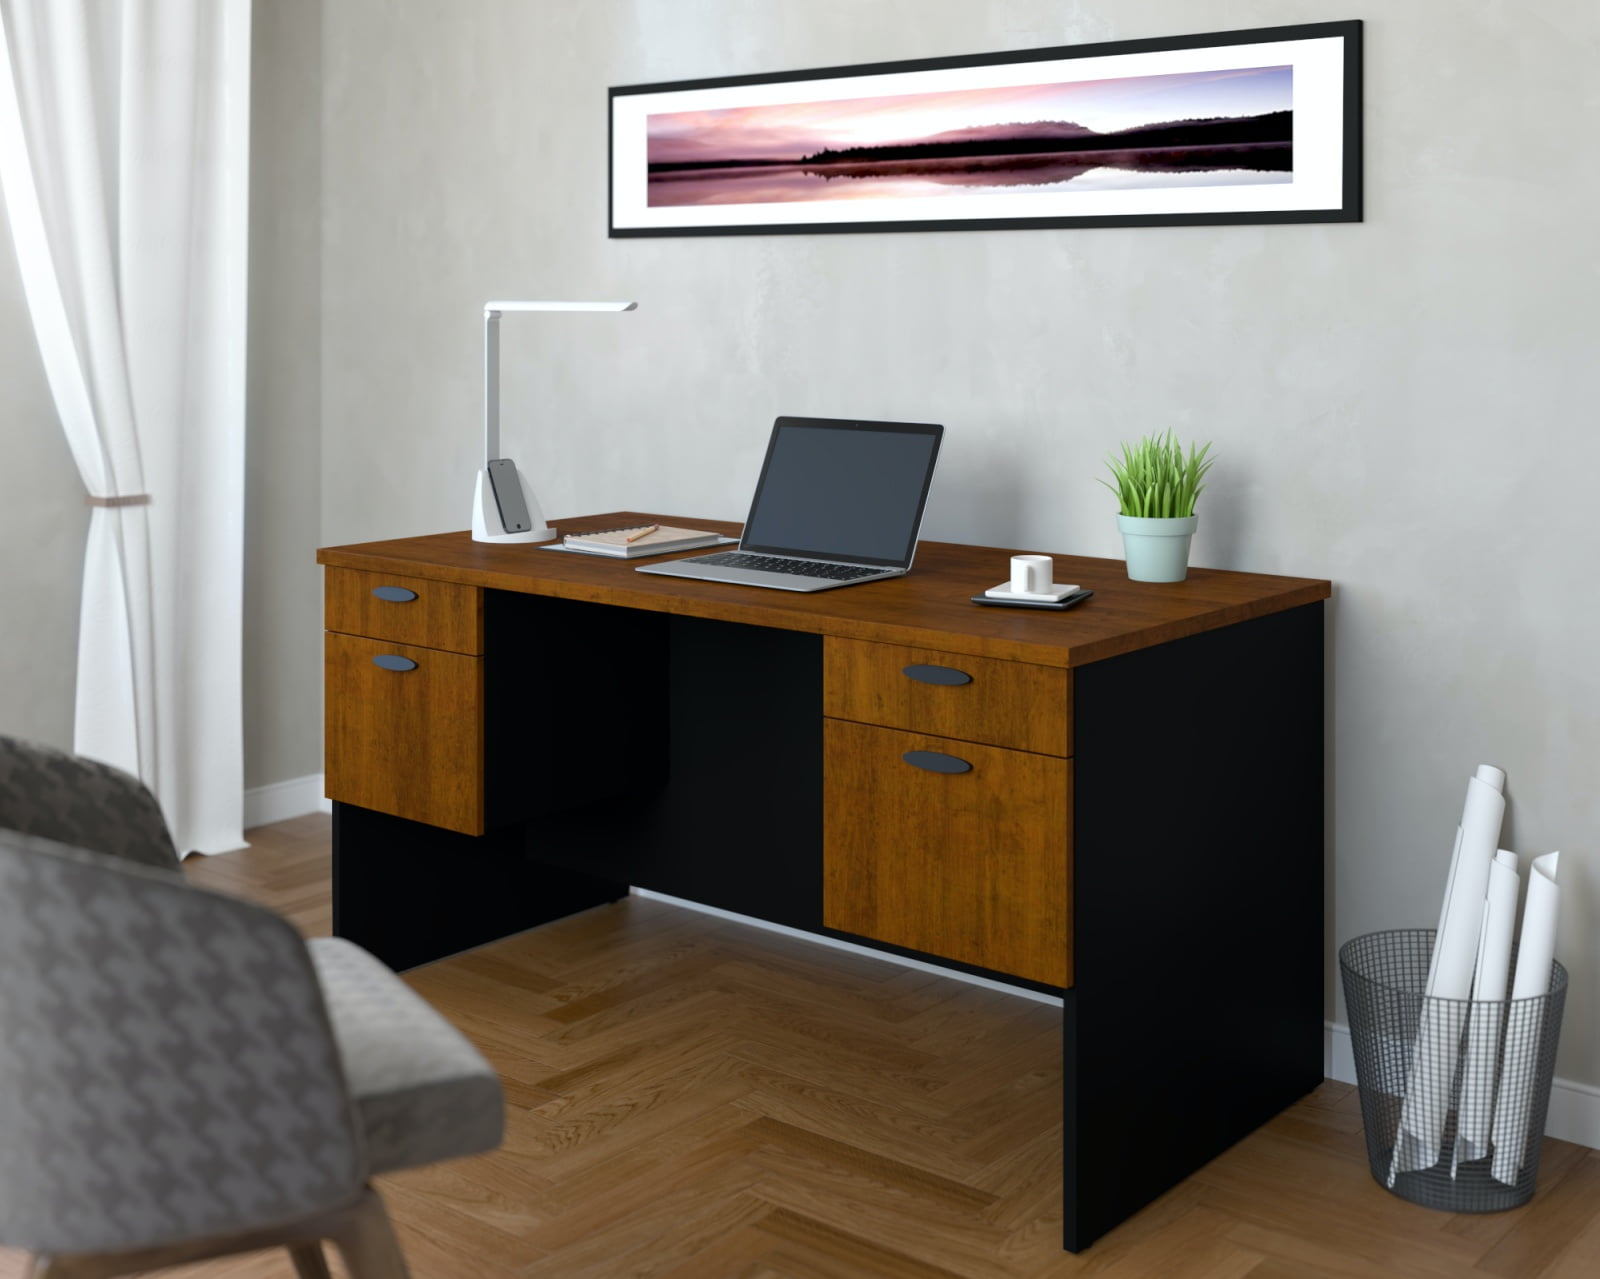 Home office with a Bestar desk